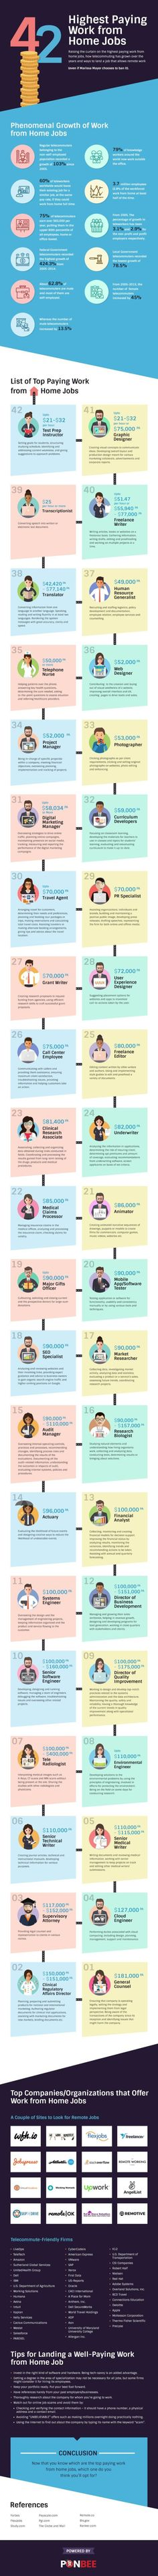 The Incredible List of 42 Highest Paying Telecommuting Jobs #infographic